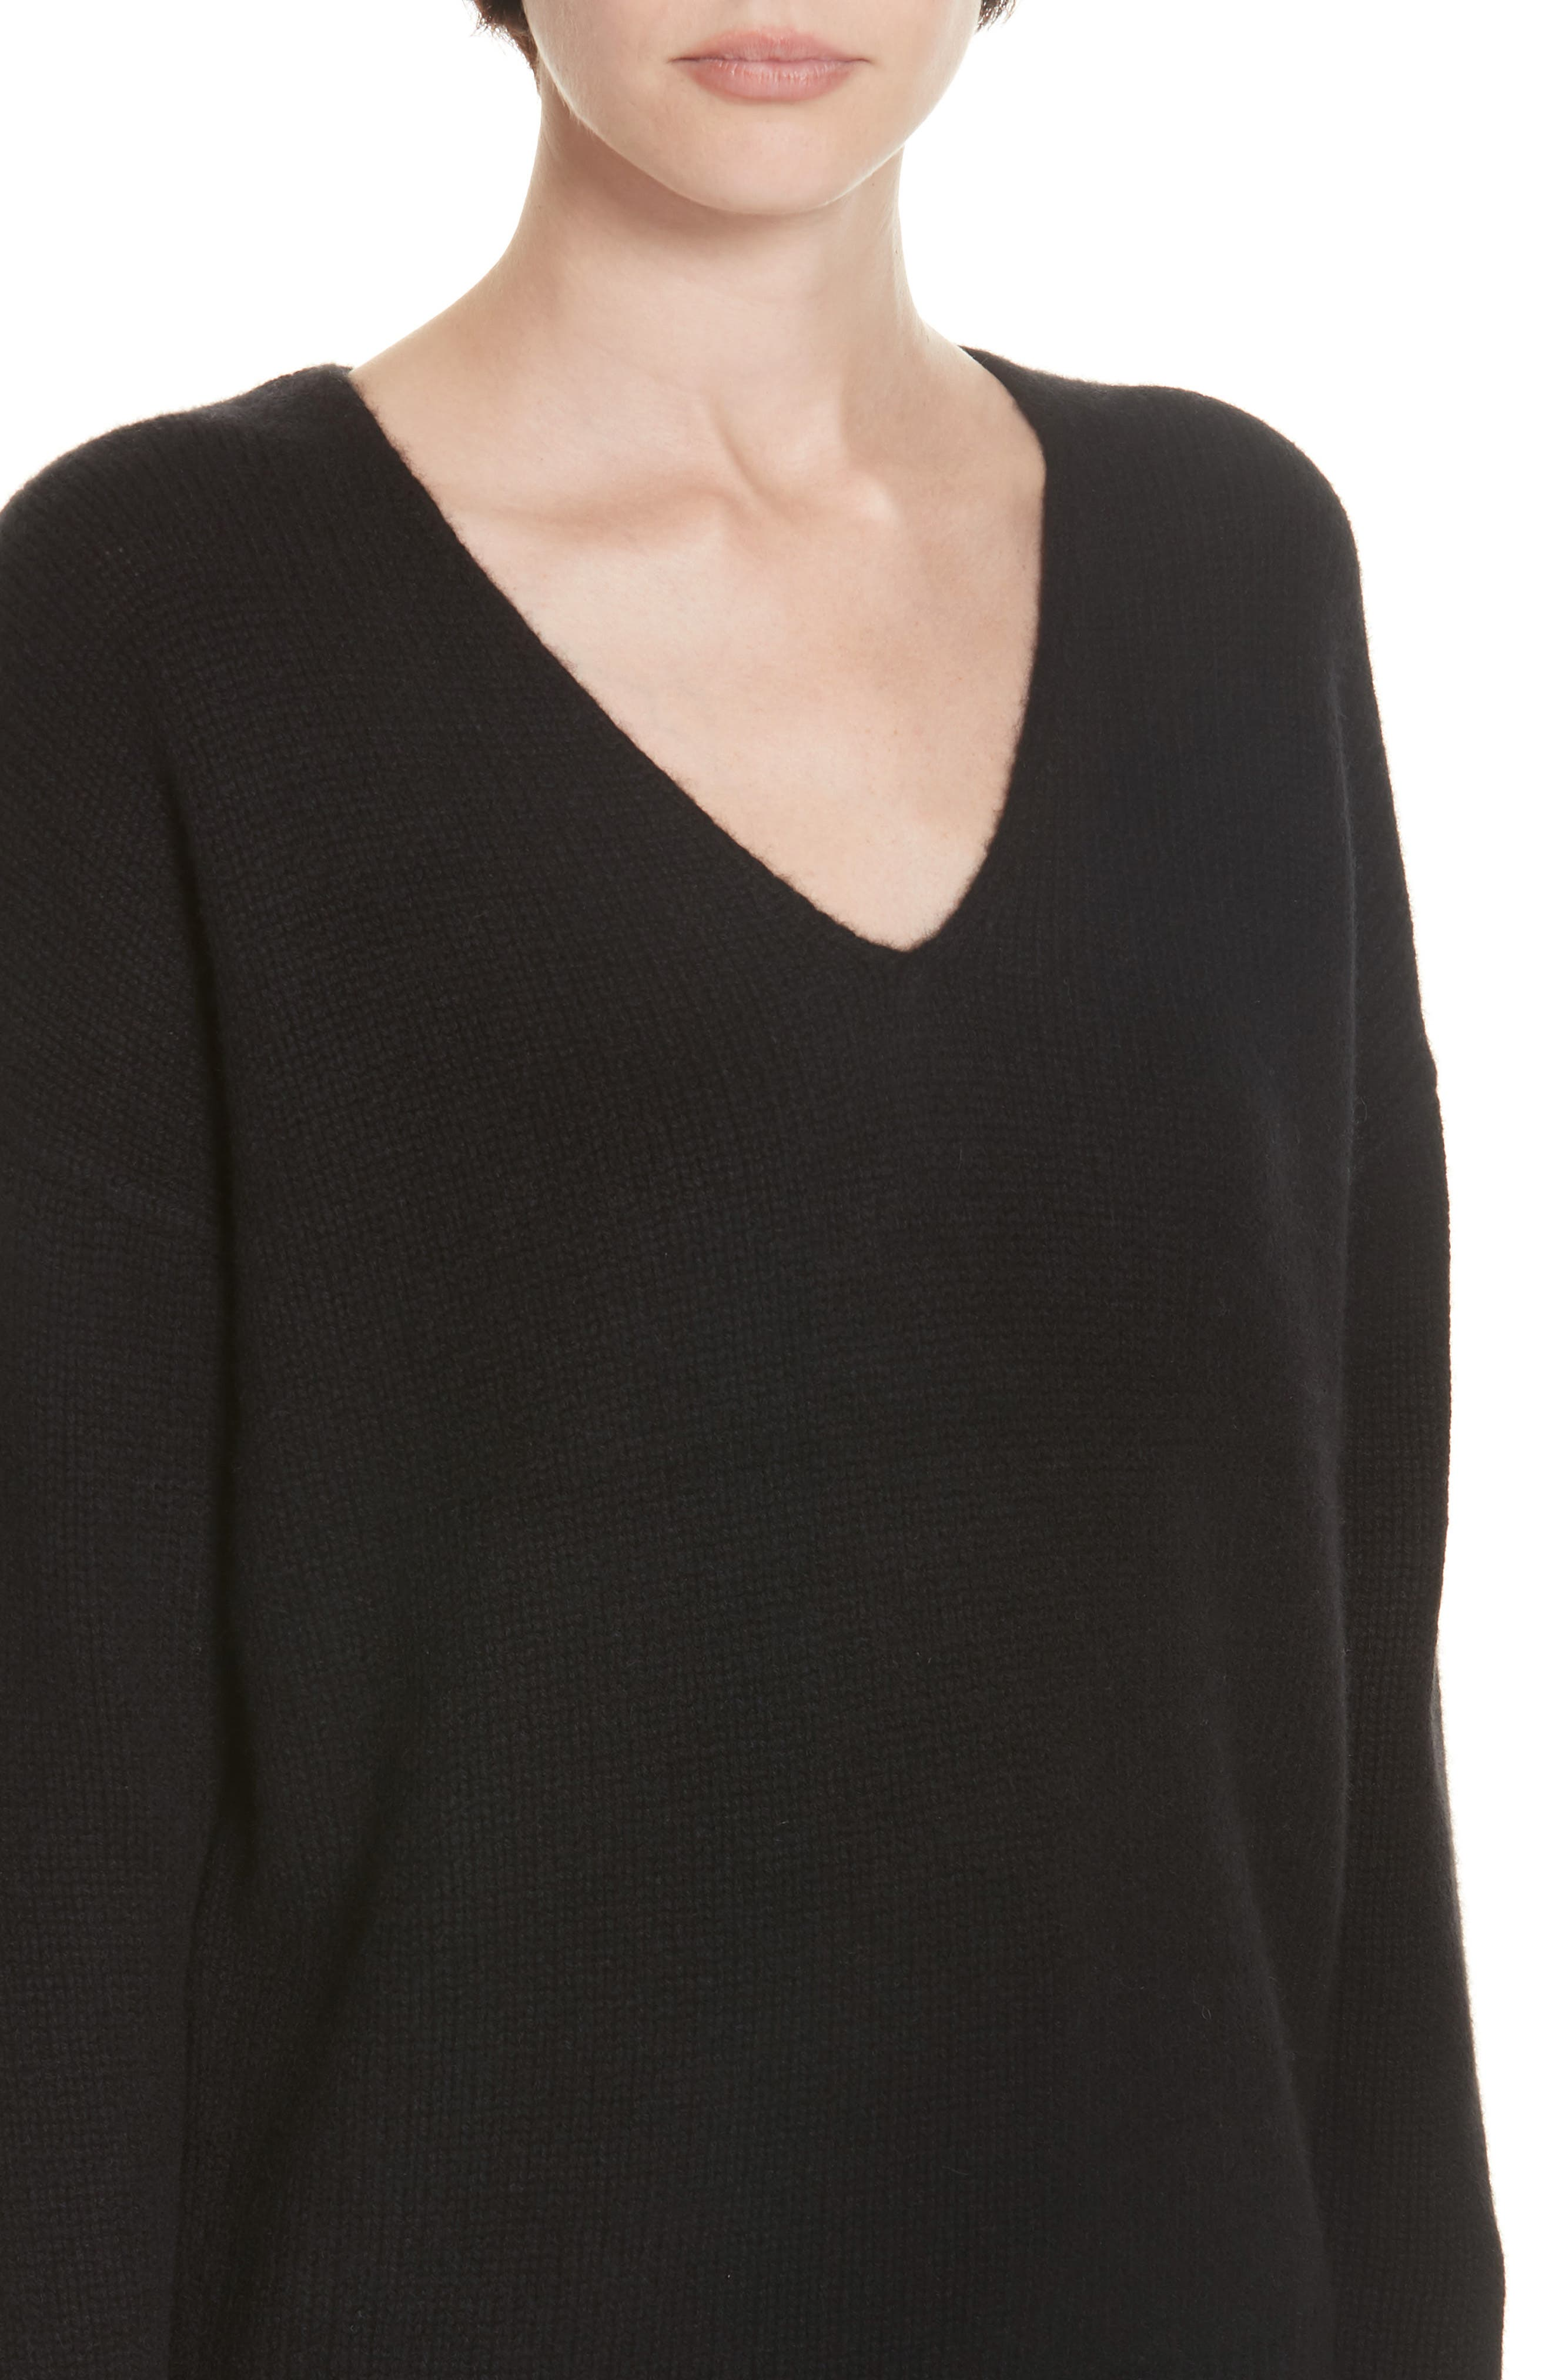 Relaxed Cashmere Sweater,                             Alternate thumbnail 4, color,                             BLACK